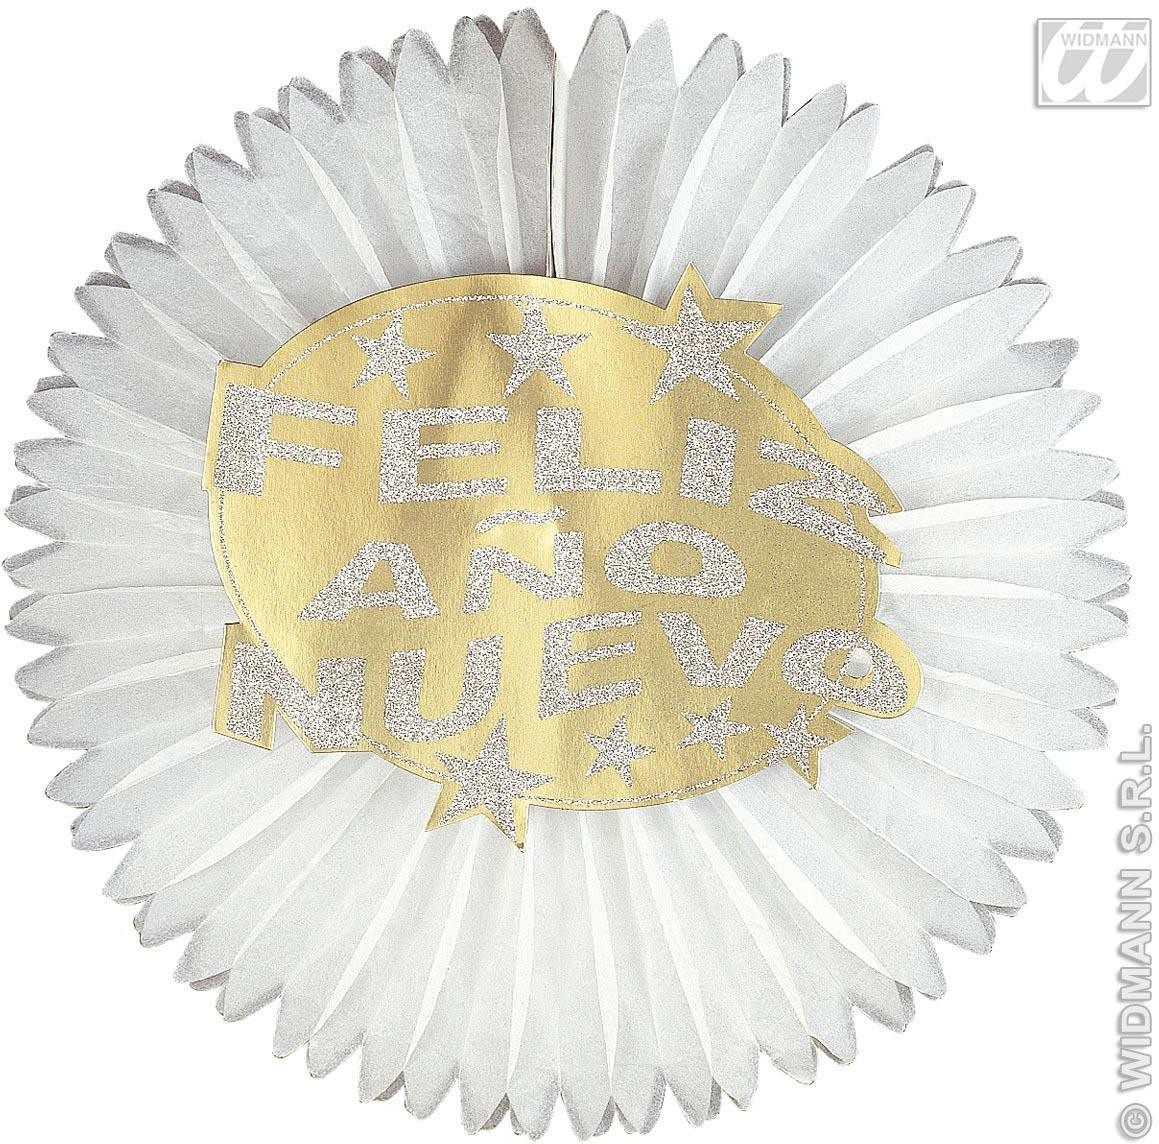 Hologr.Feliz Ano Nuevo Paper Fans-Diam.55Cm Fancy Dress